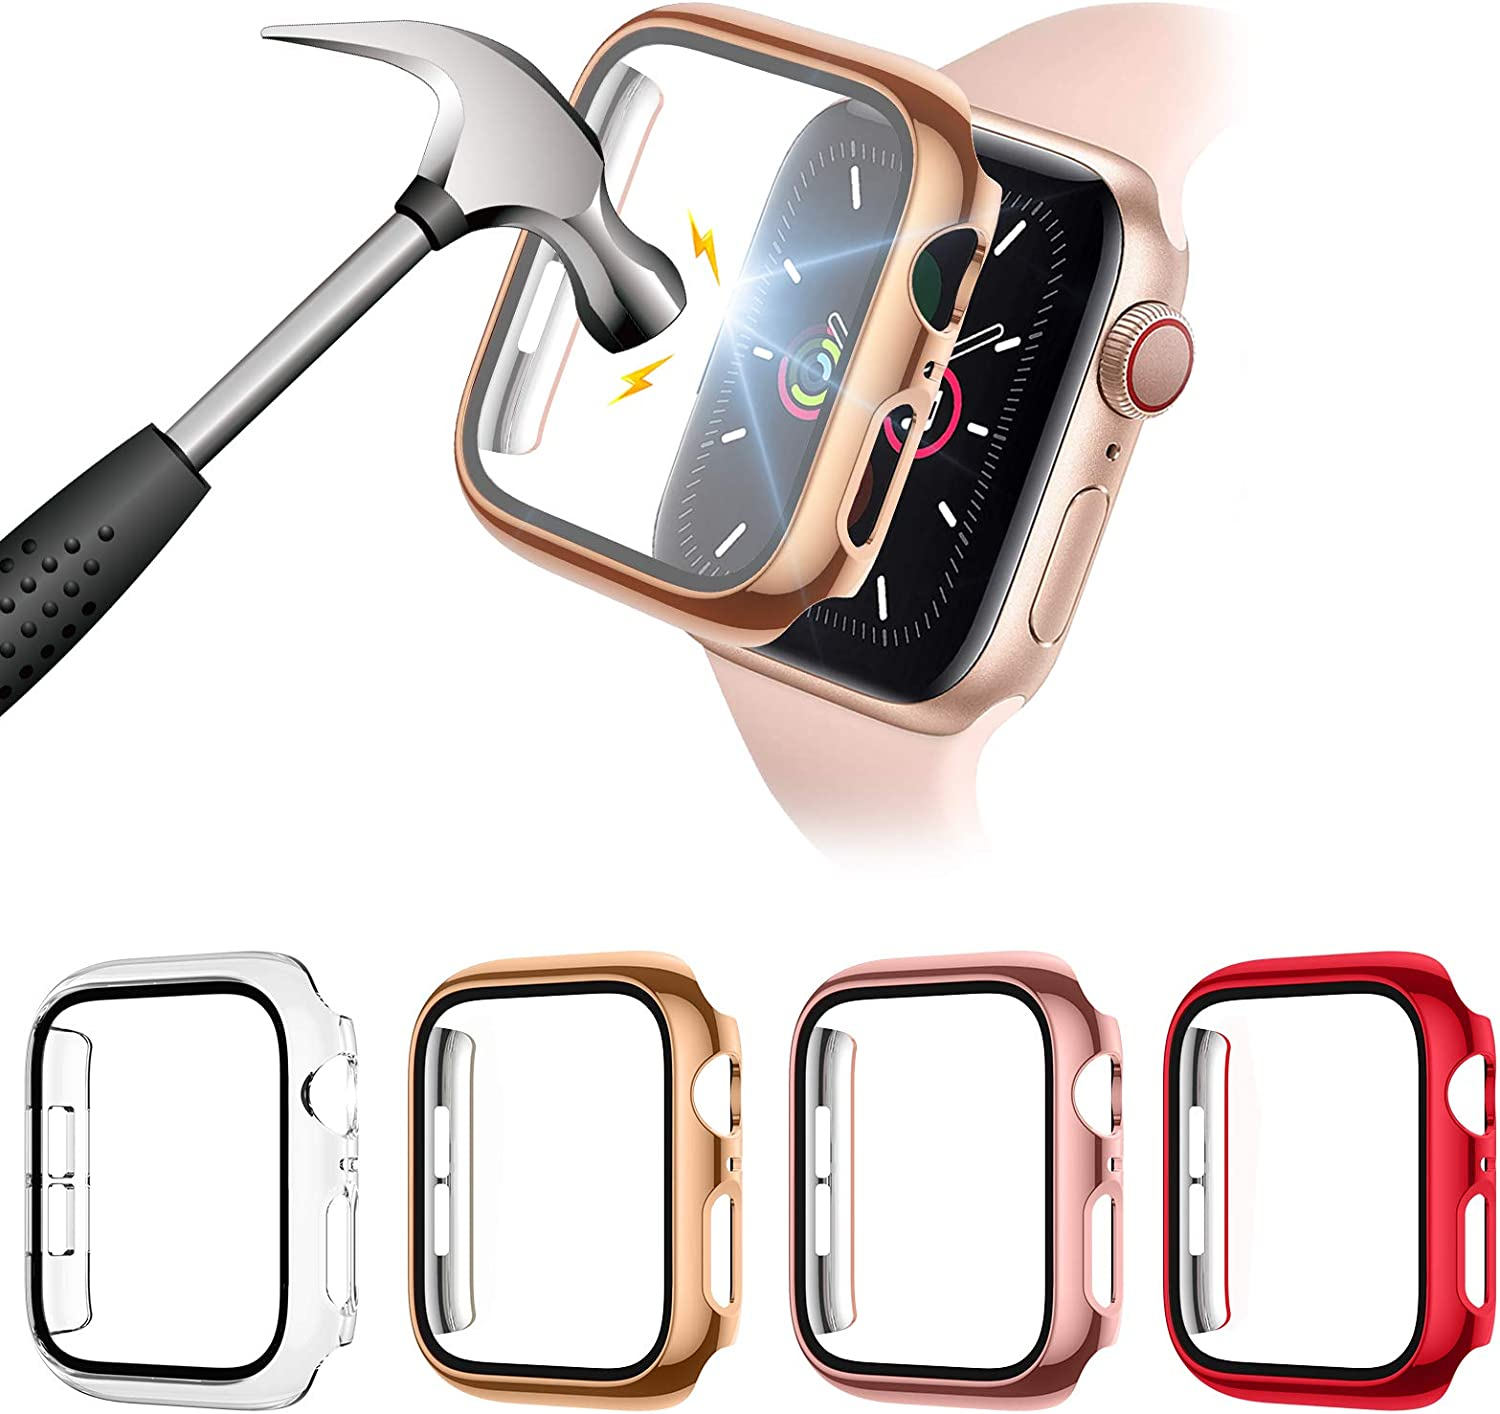 Liwin 4-Pack PC Case with Tempered Glass Screen Protector Compatible with Apple Watch Series 6 / SE / 5/4 44mm, HD Hard PC Protective Cover for iWatch 6 SE (44mm, Clear/Rose Gold/Rose Pink/Red)